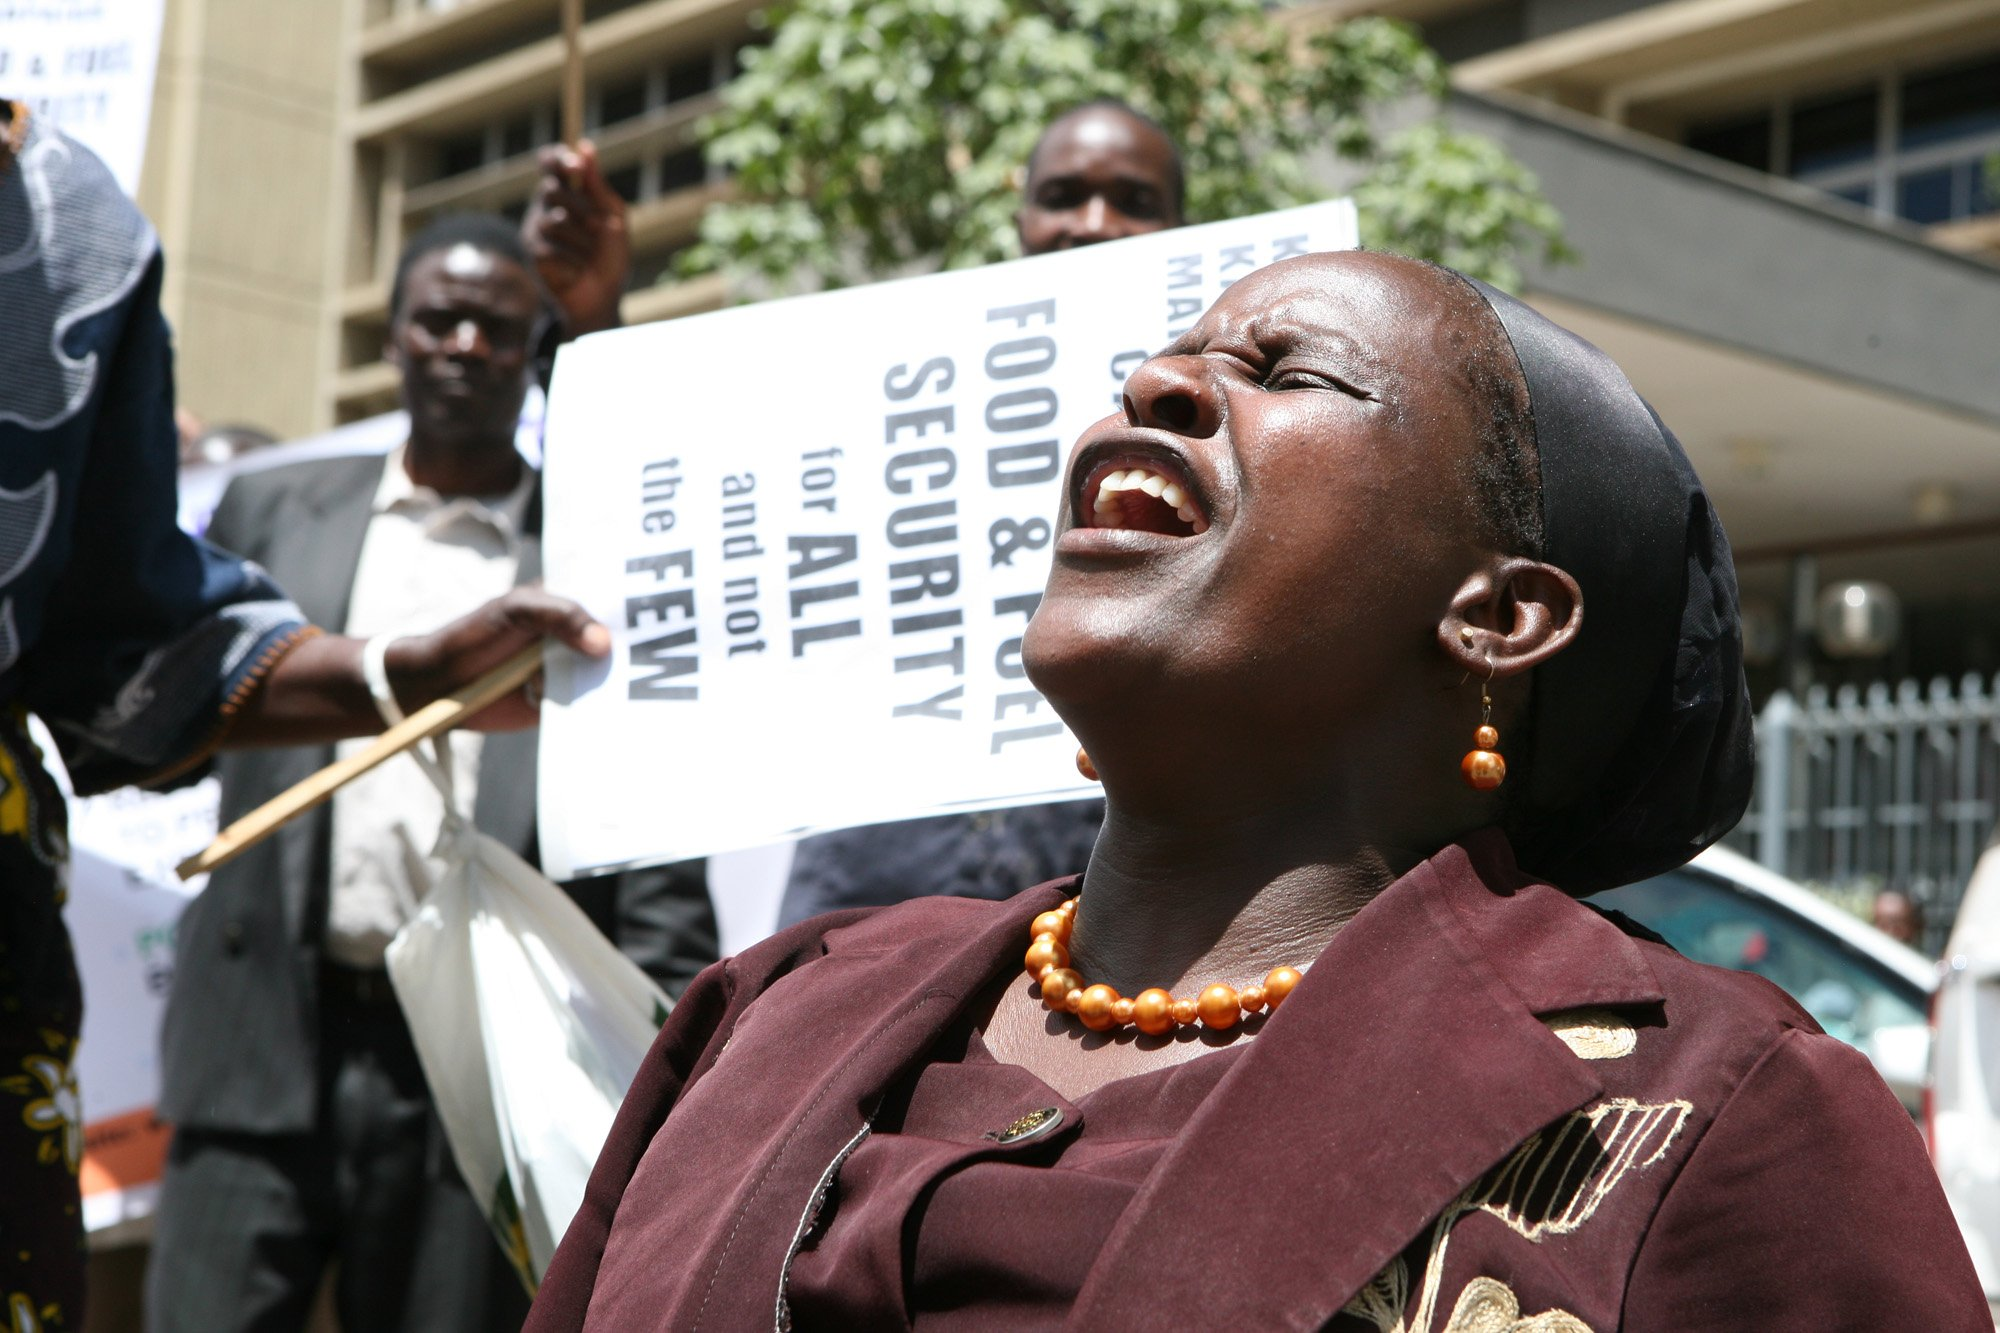 A woman joins fellow protestors in demonstrations to pressure the Kenya government to take action against rising fuel prices. Rising fuel prices have had severe impacts on low-income earners